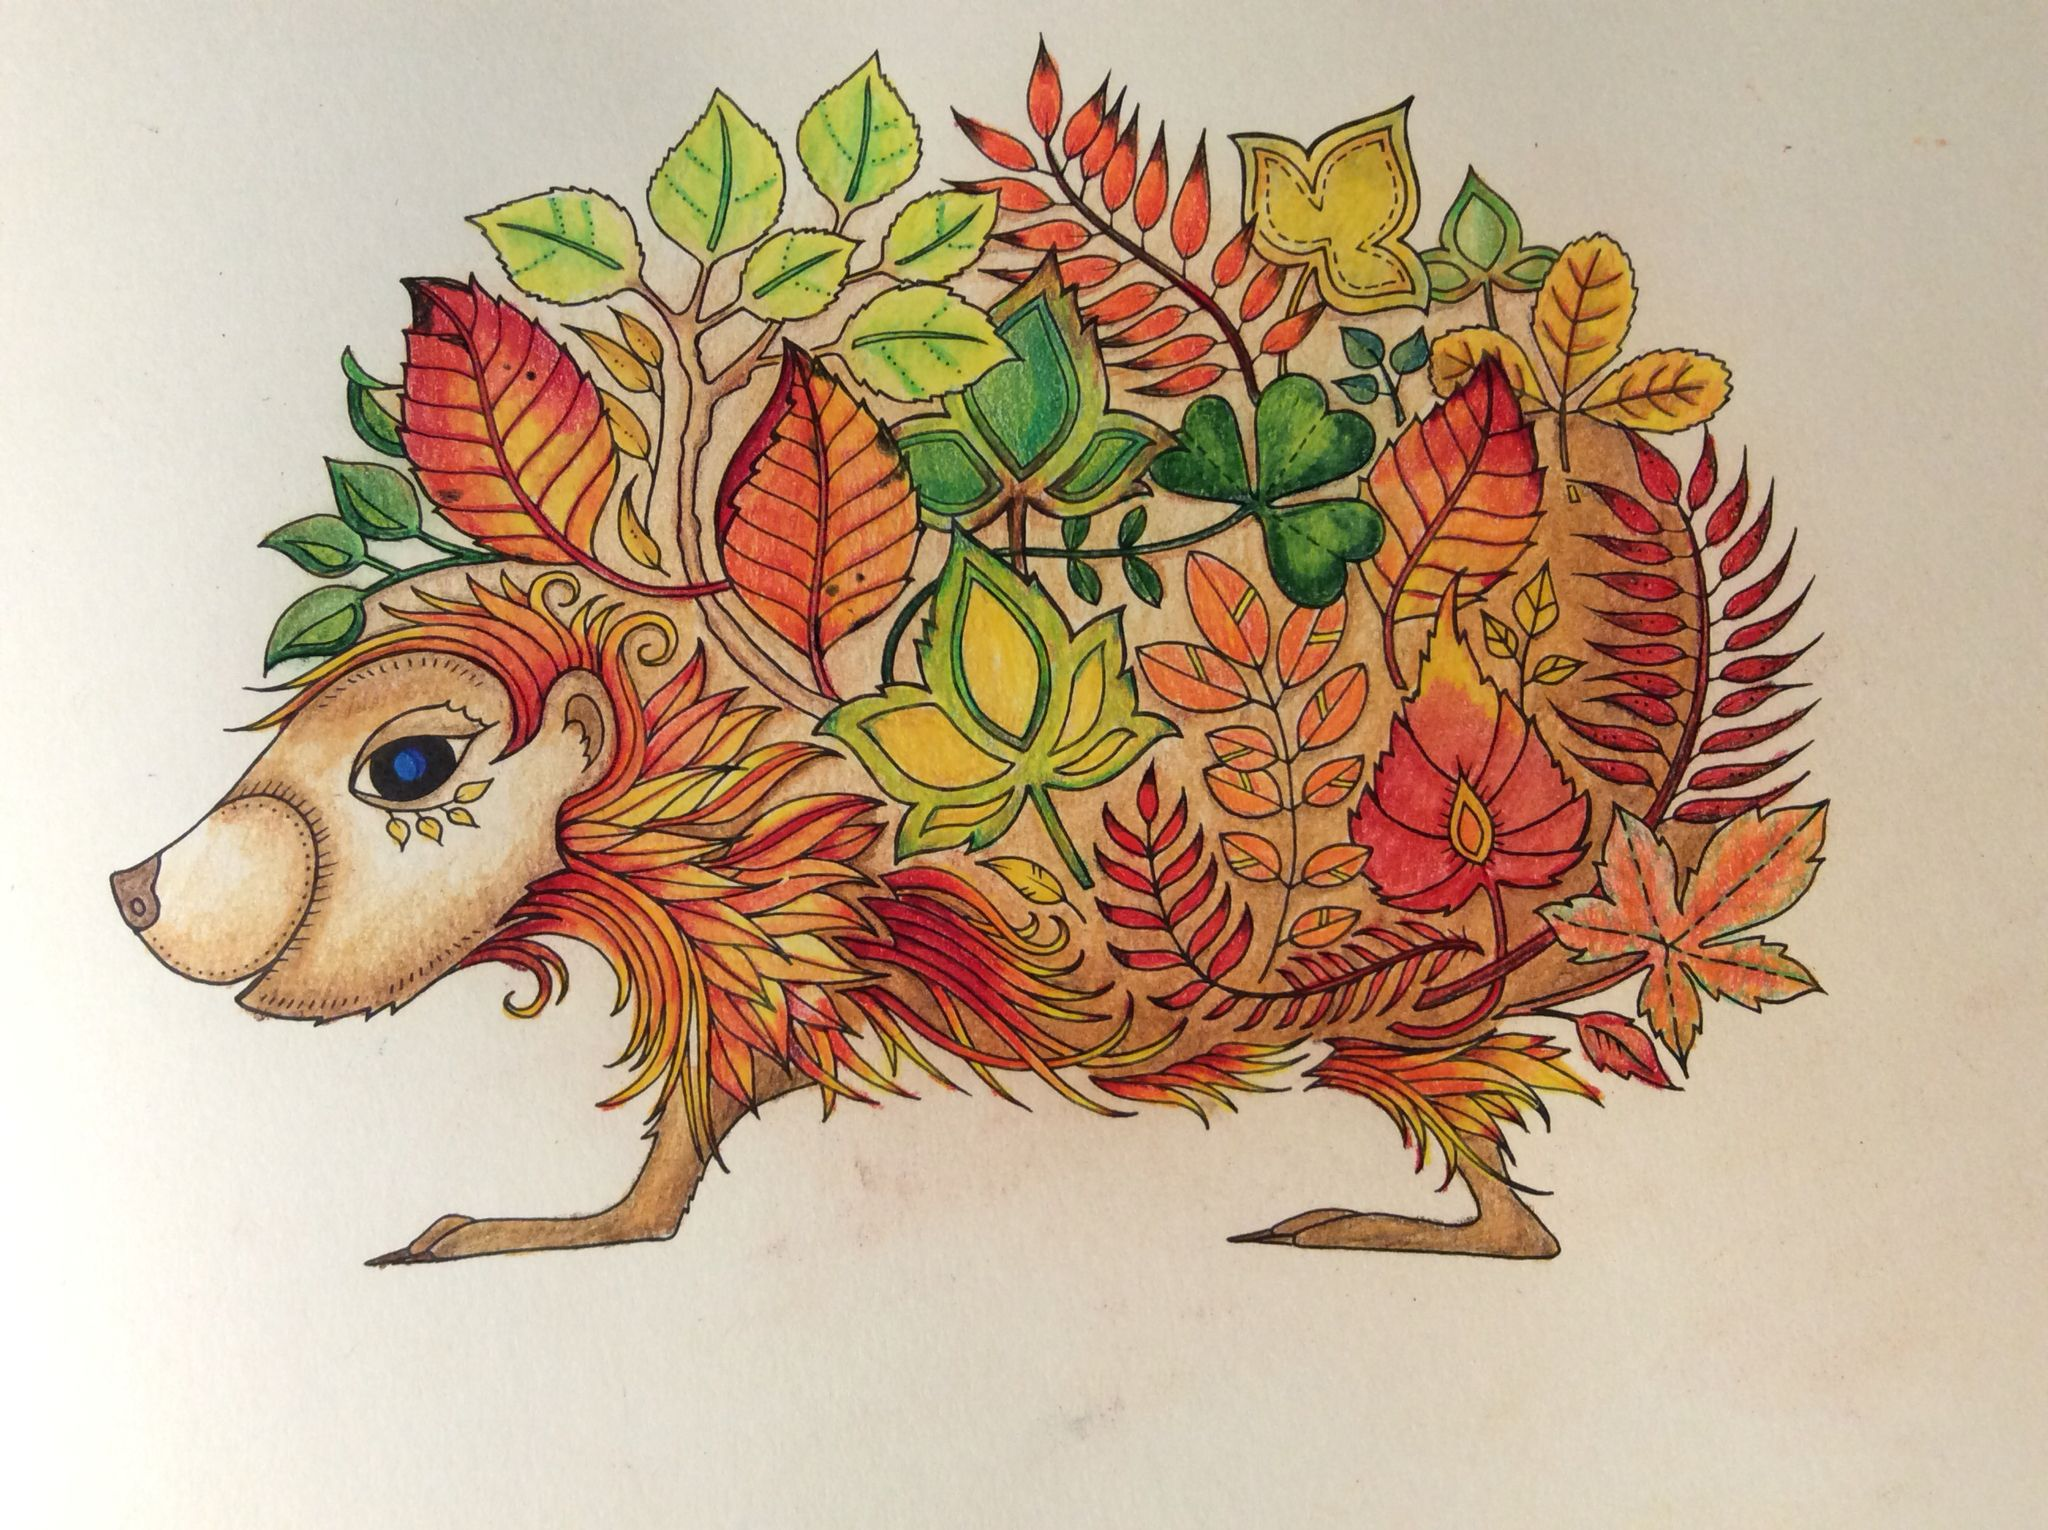 Hedgehog No Background Enchanted Forest Johanna Basford Cathyc Enchanted Forest Coloring Book Johanna Basford Enchanted Forest Enchanted Forest Coloring